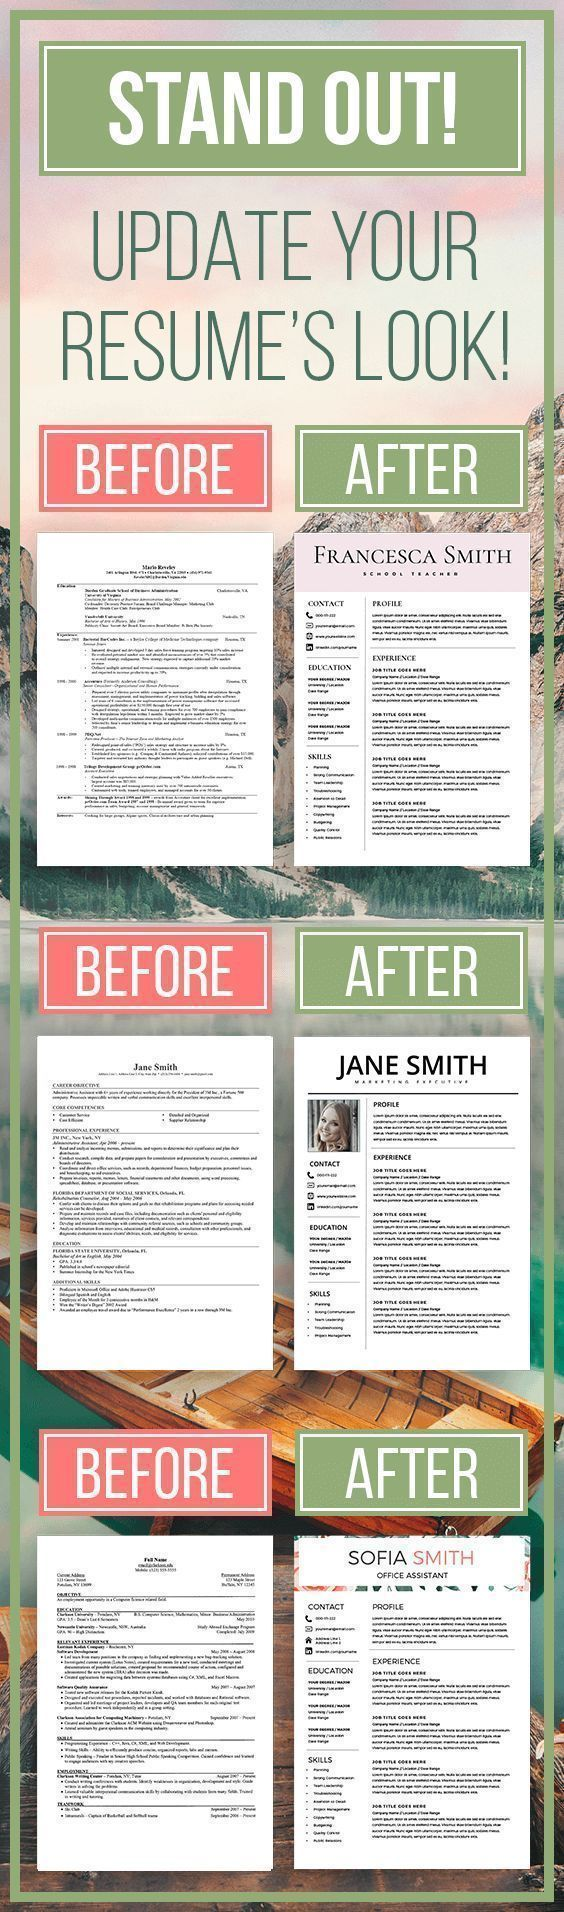 top resume templates creative cv templates resume layout professional cv template modern